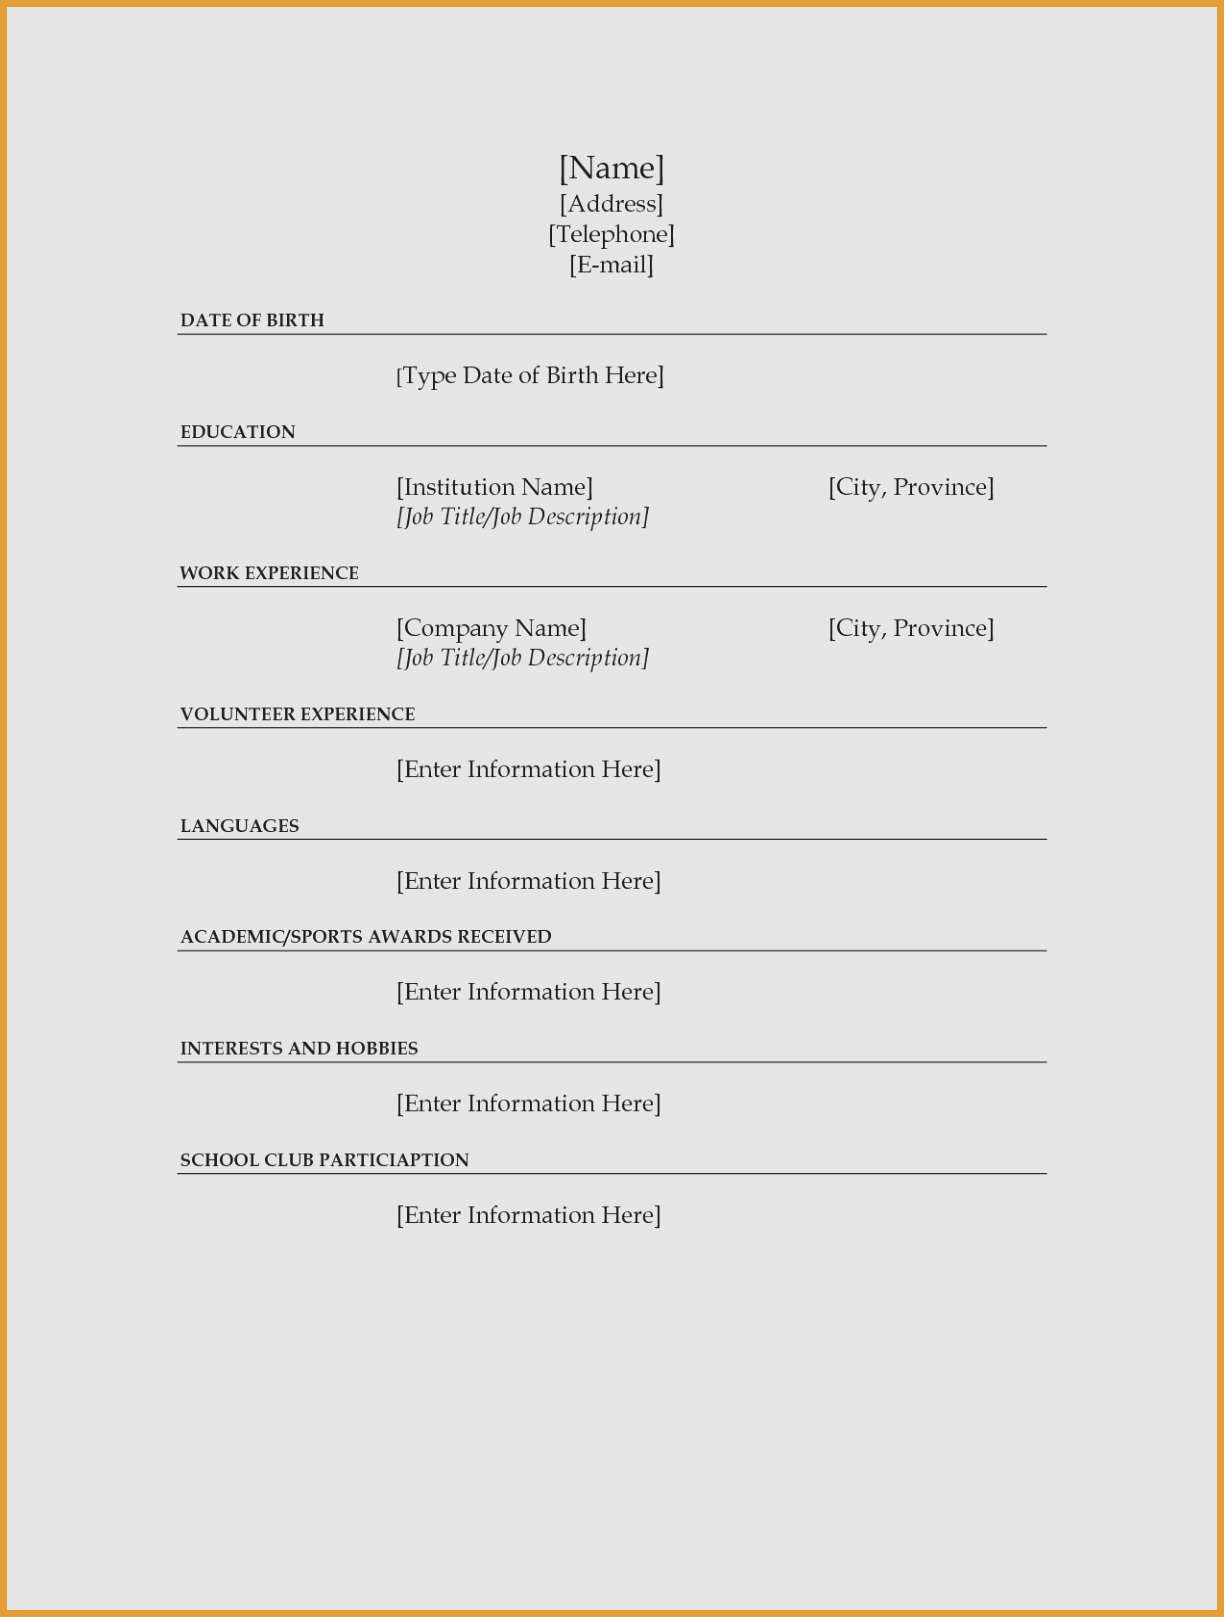 Resume Maker Free Online - Build Resume Line Inspirational Beautiful Best Resume Maker